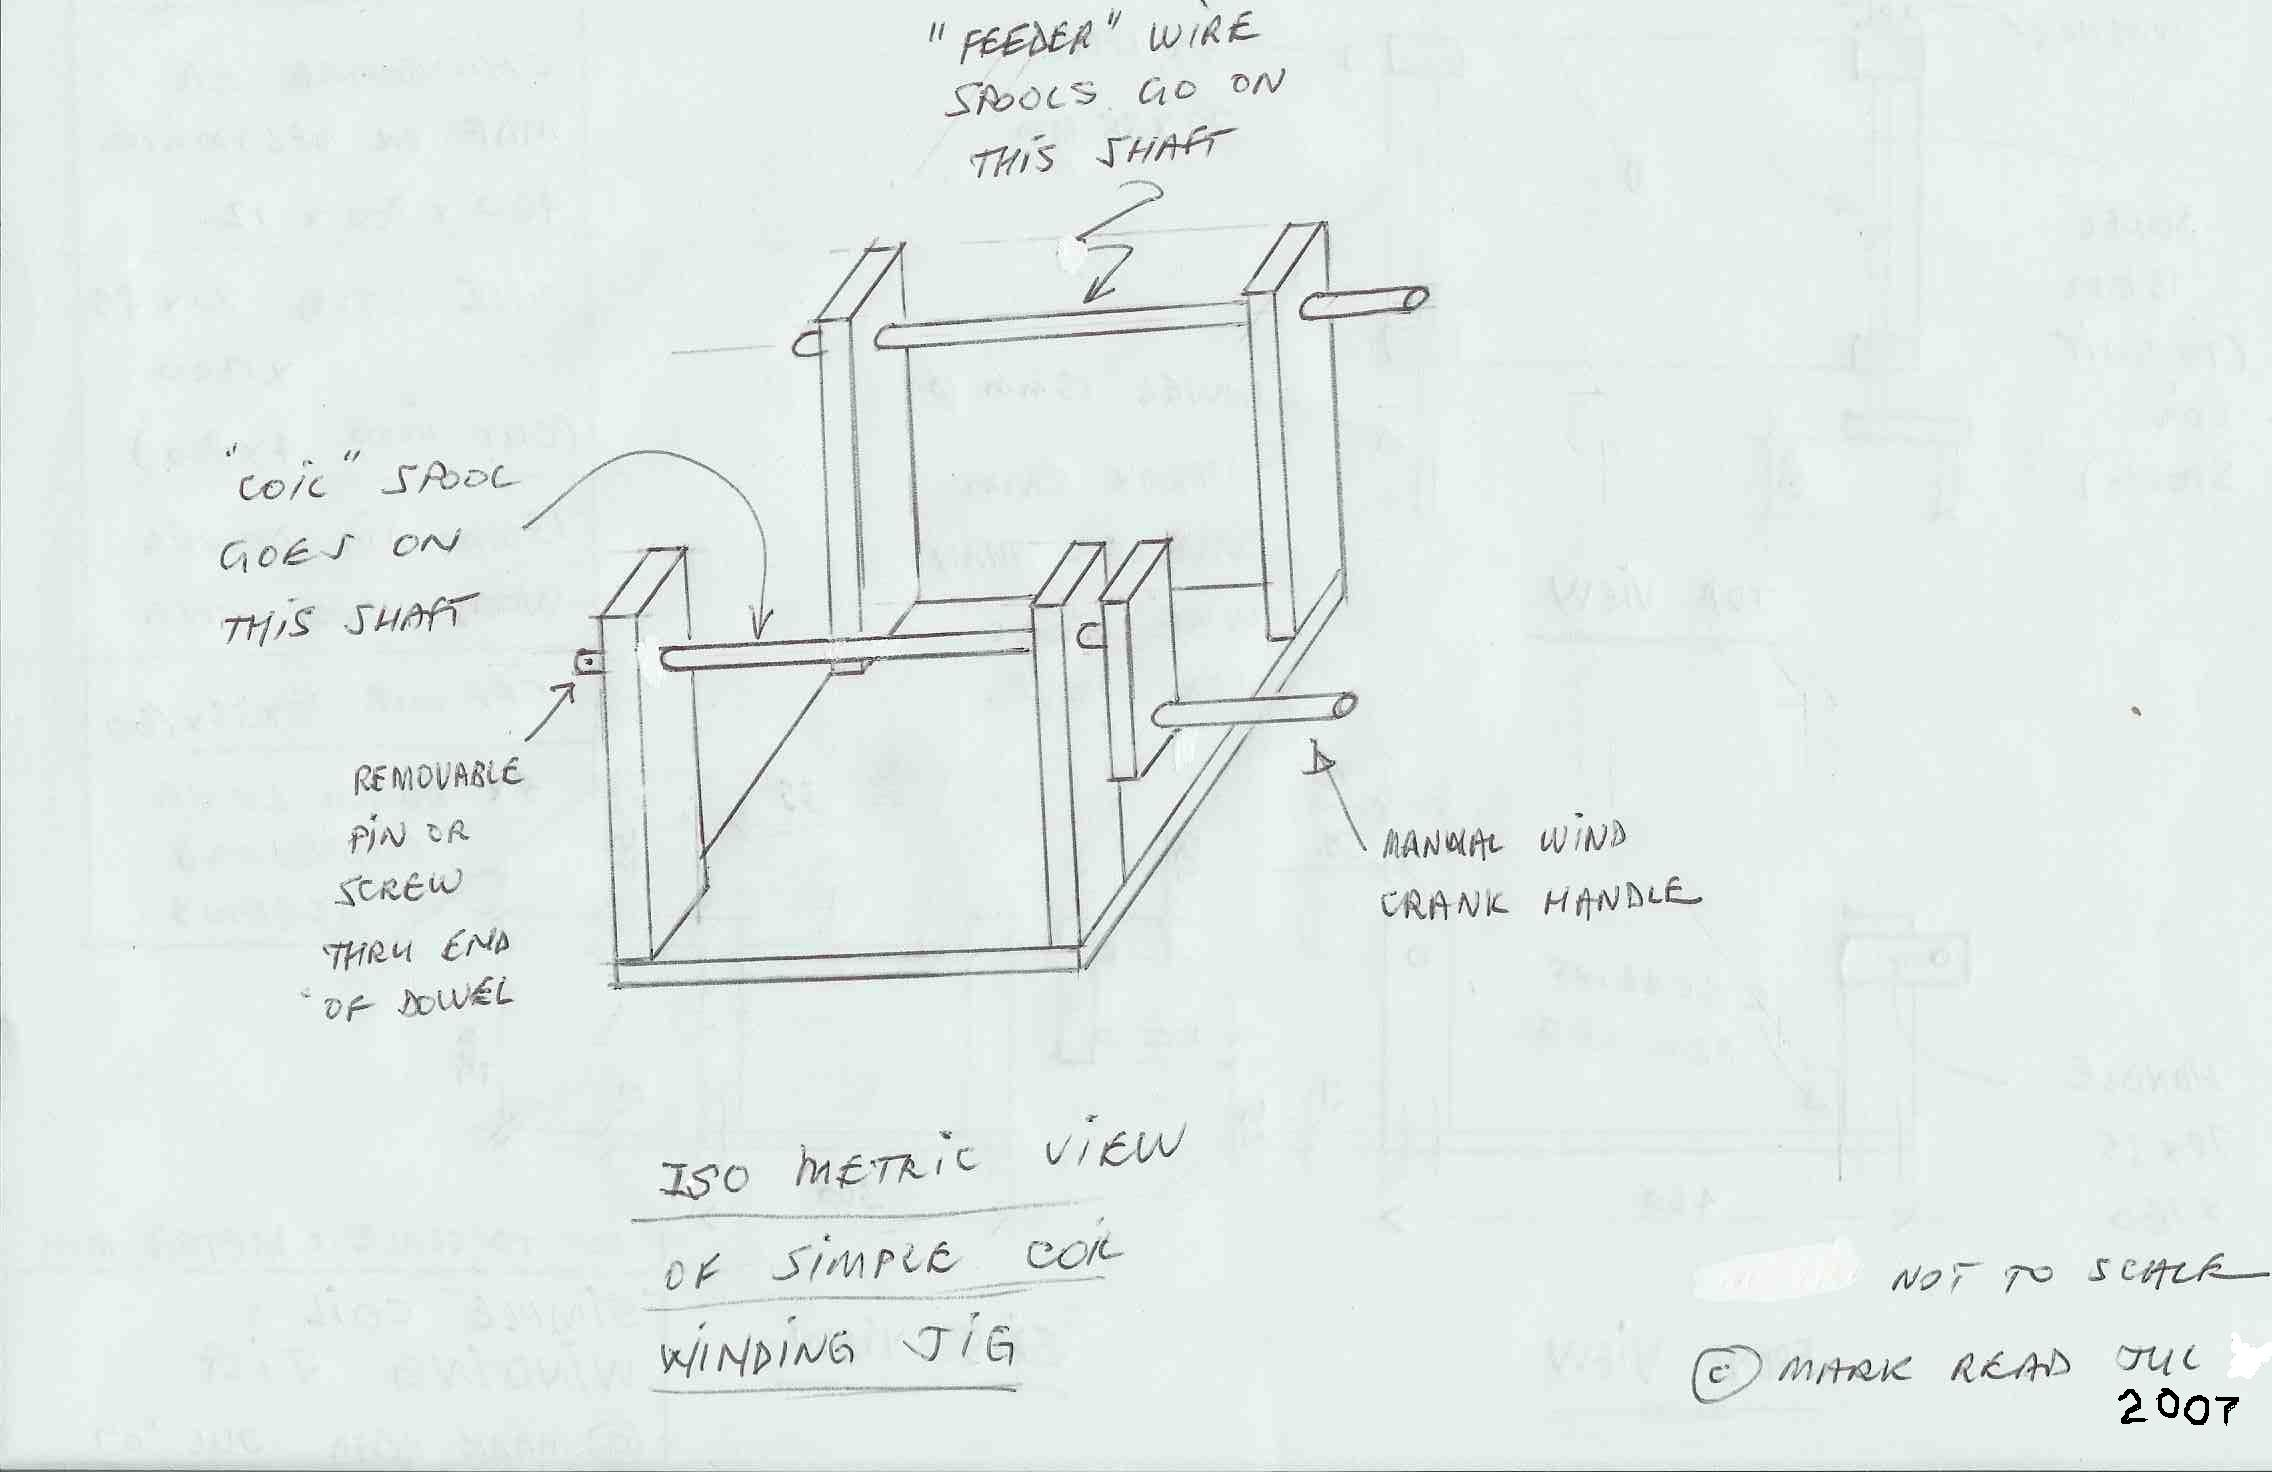 How To Contruct A Simple Coil Winding Jig